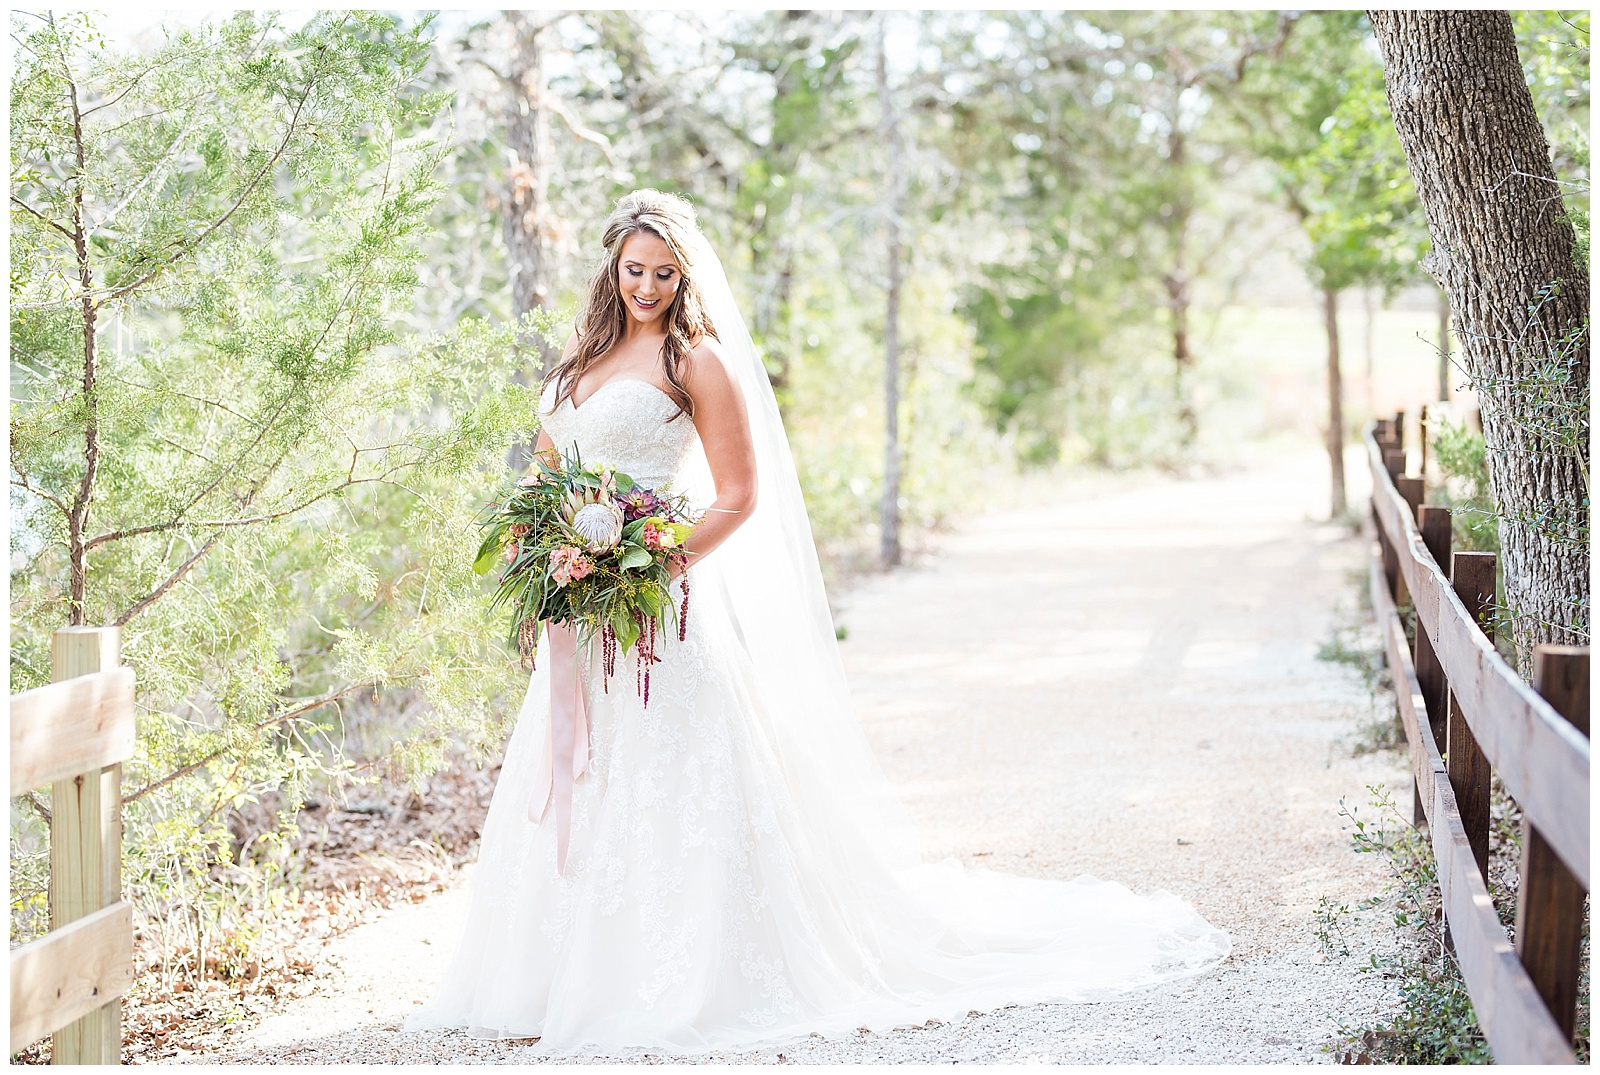 sarah's bridal session at peach creek ranch in college station tx by rachel driskell photography